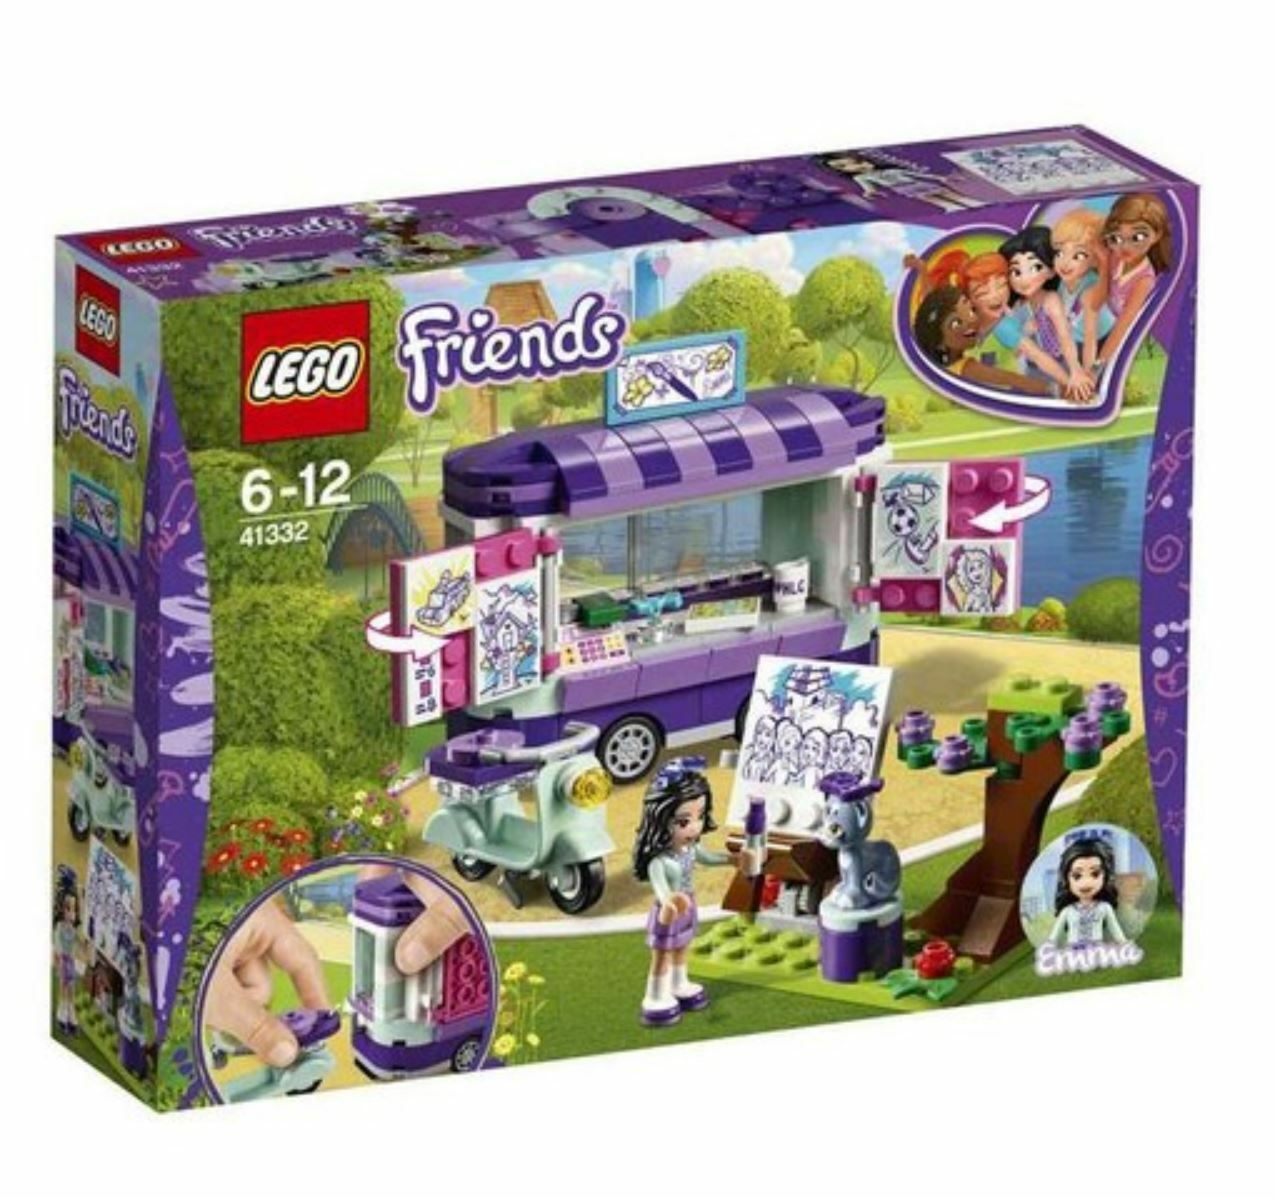 [LEGO] Friends Emma's Art Stand 41332 2018 Version Free Shipping